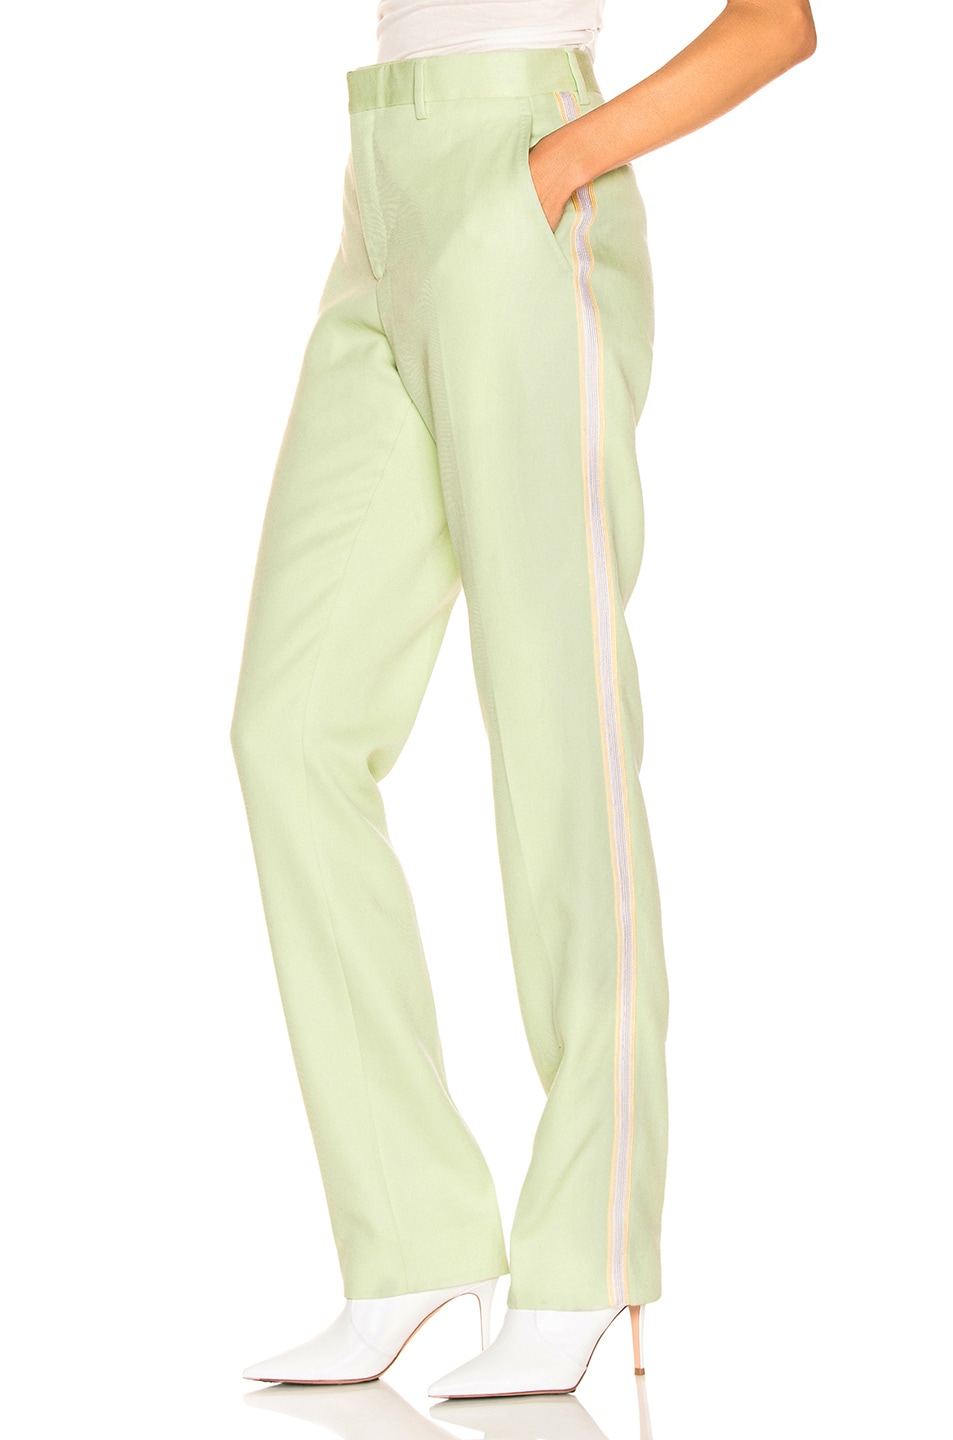 Image 1 of CALVIN KLEIN 205W39NYC Wool Twill Uniform Pant in Arcadian Green & Burgundy & Ecru